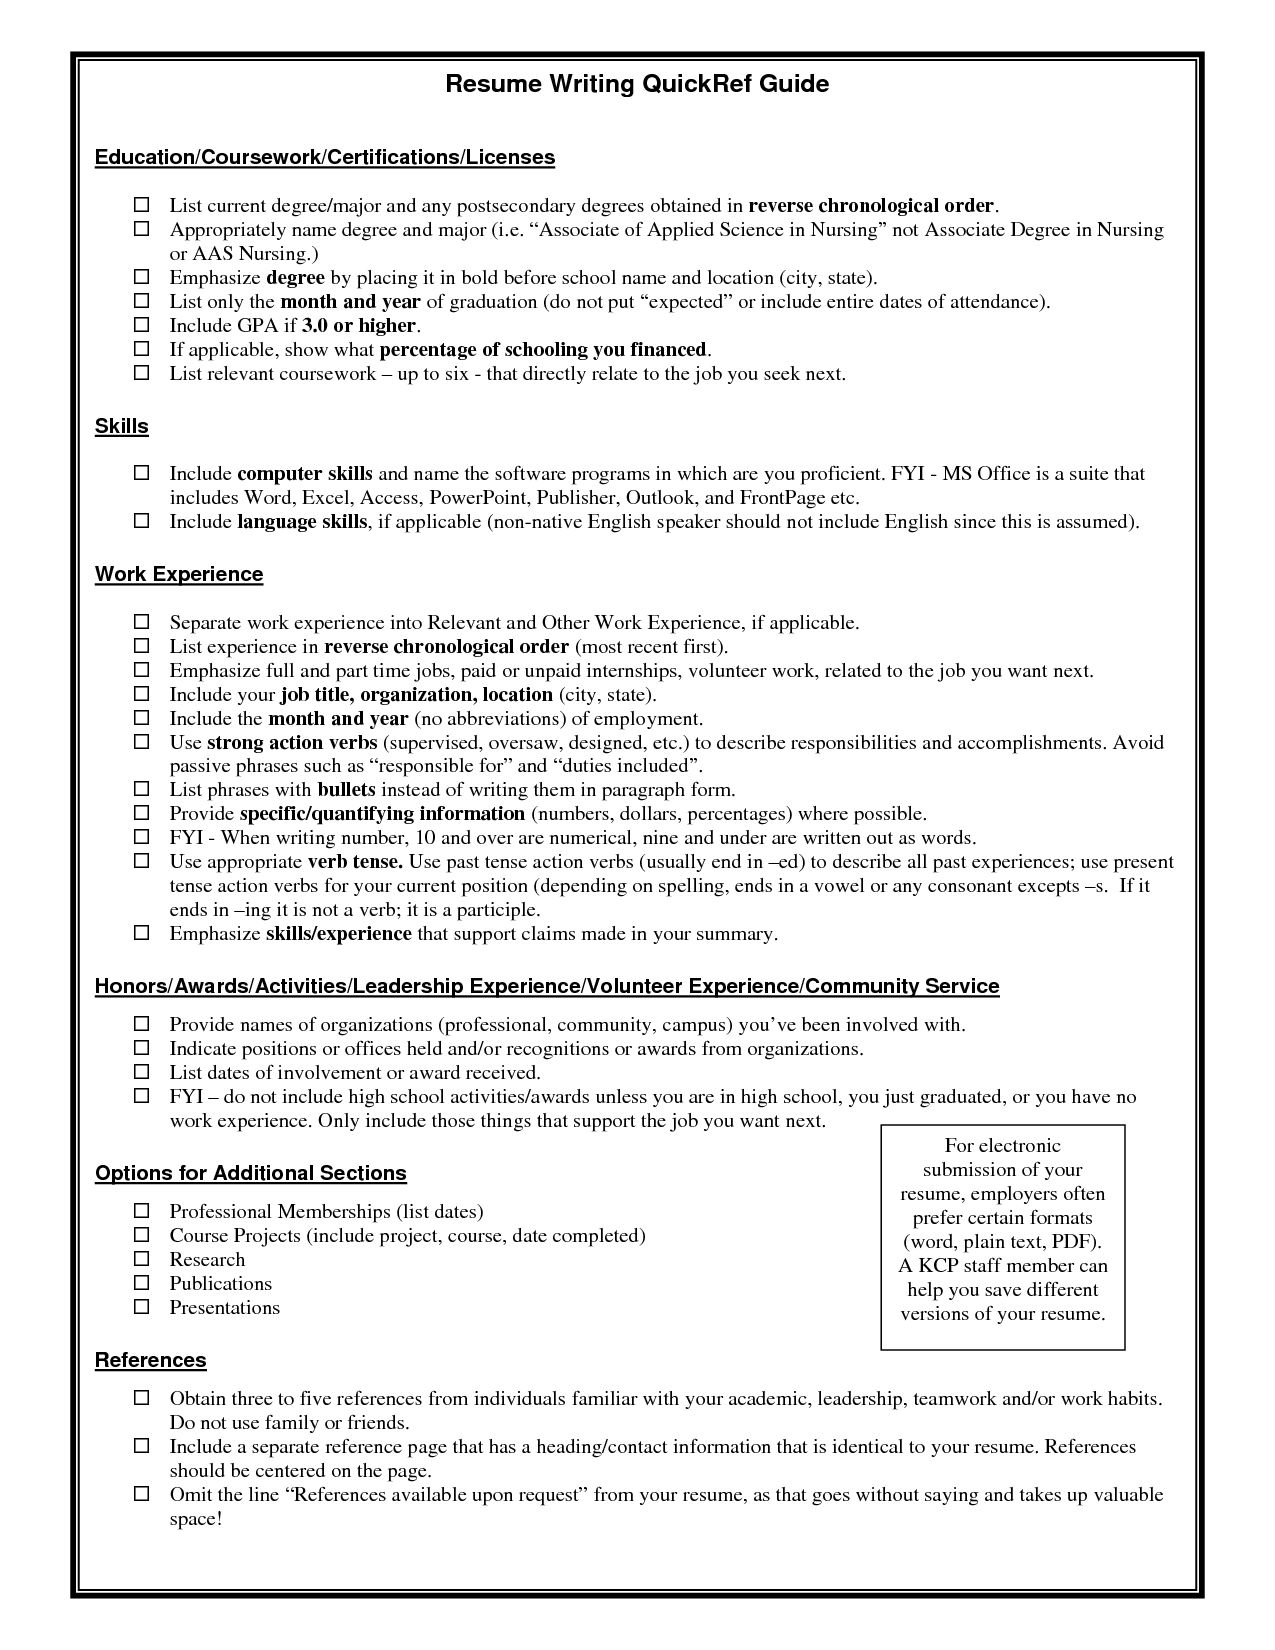 Resume Writing Template Certifications On A Resume Certification On Resume Example